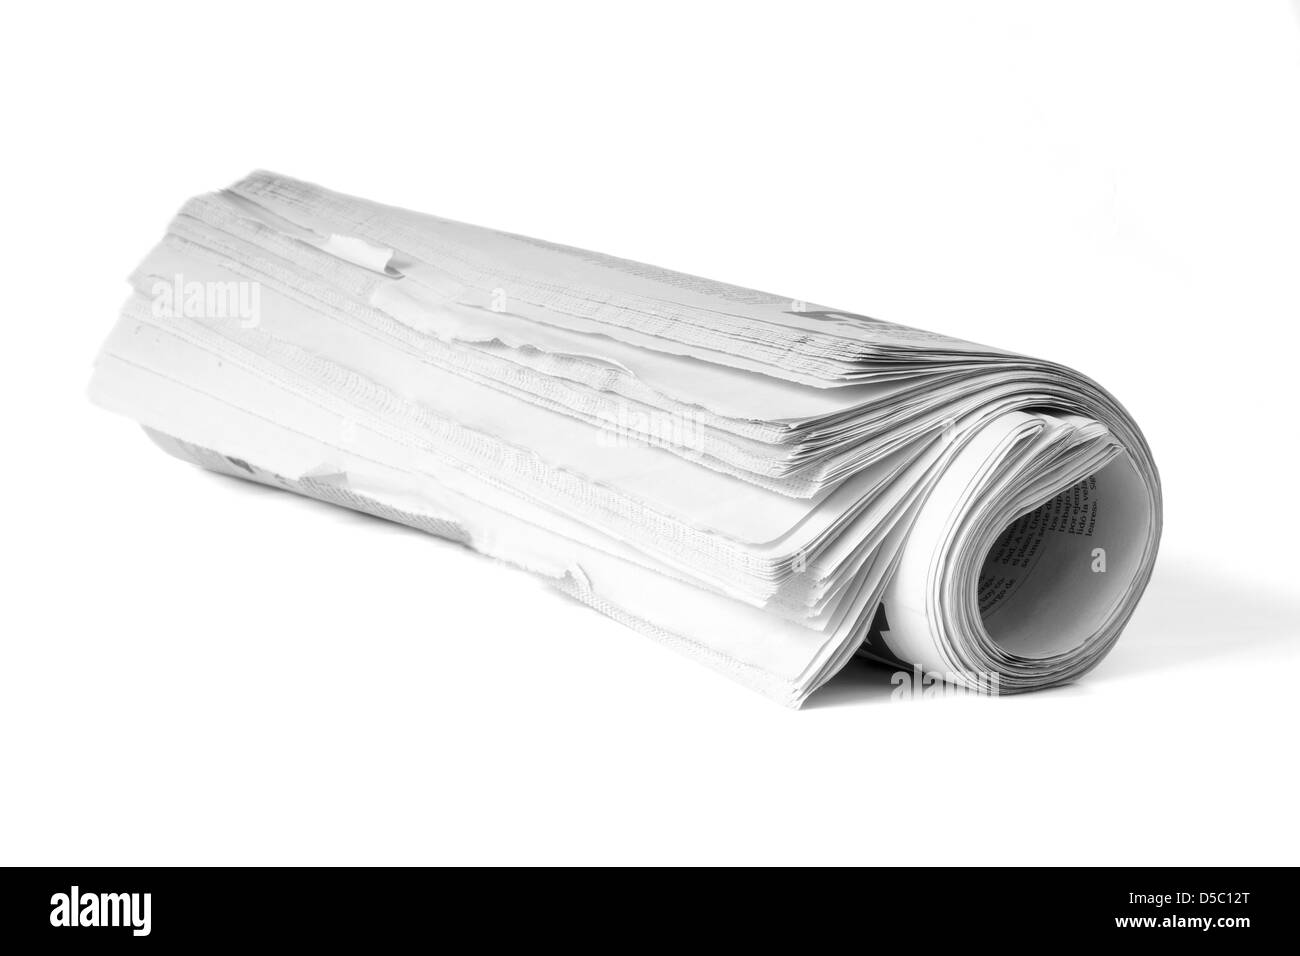 Roll of newspaper on a white background - Stock Image